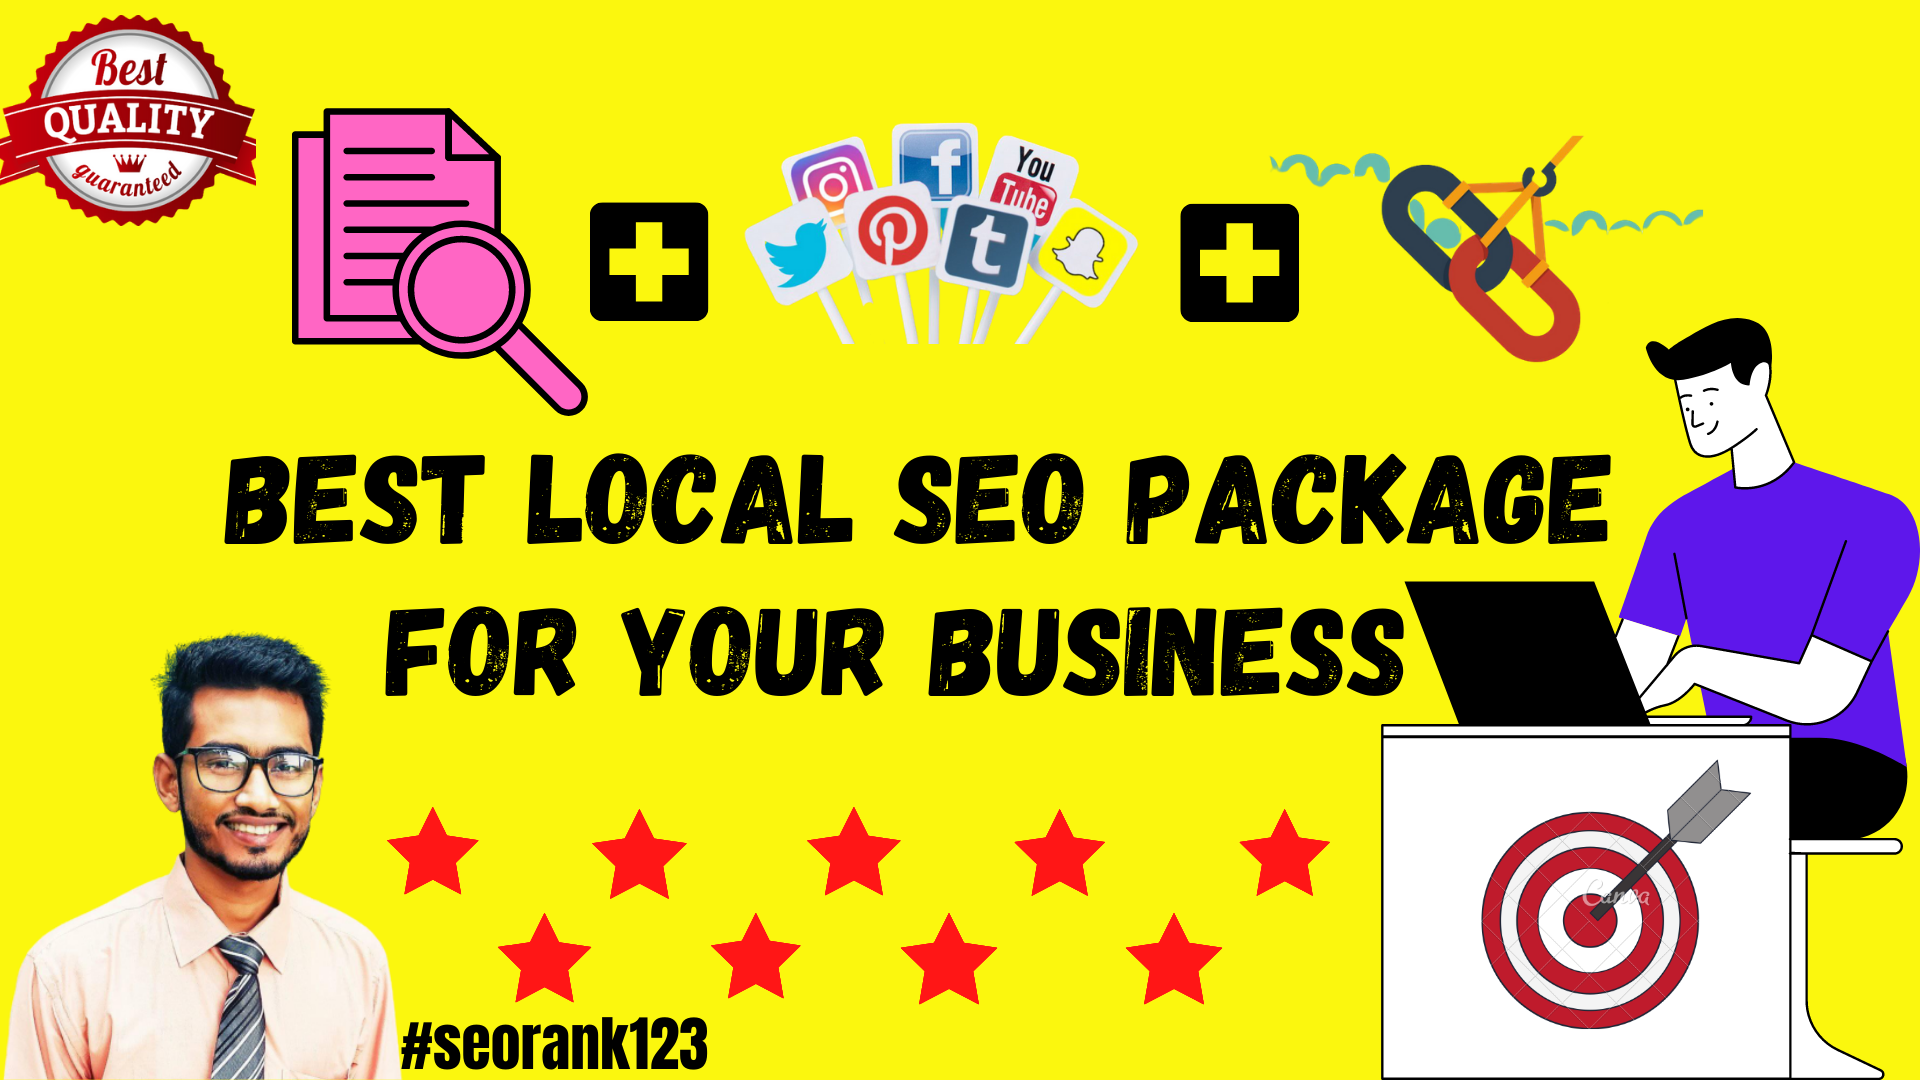 Rank your website by Magical SEO package